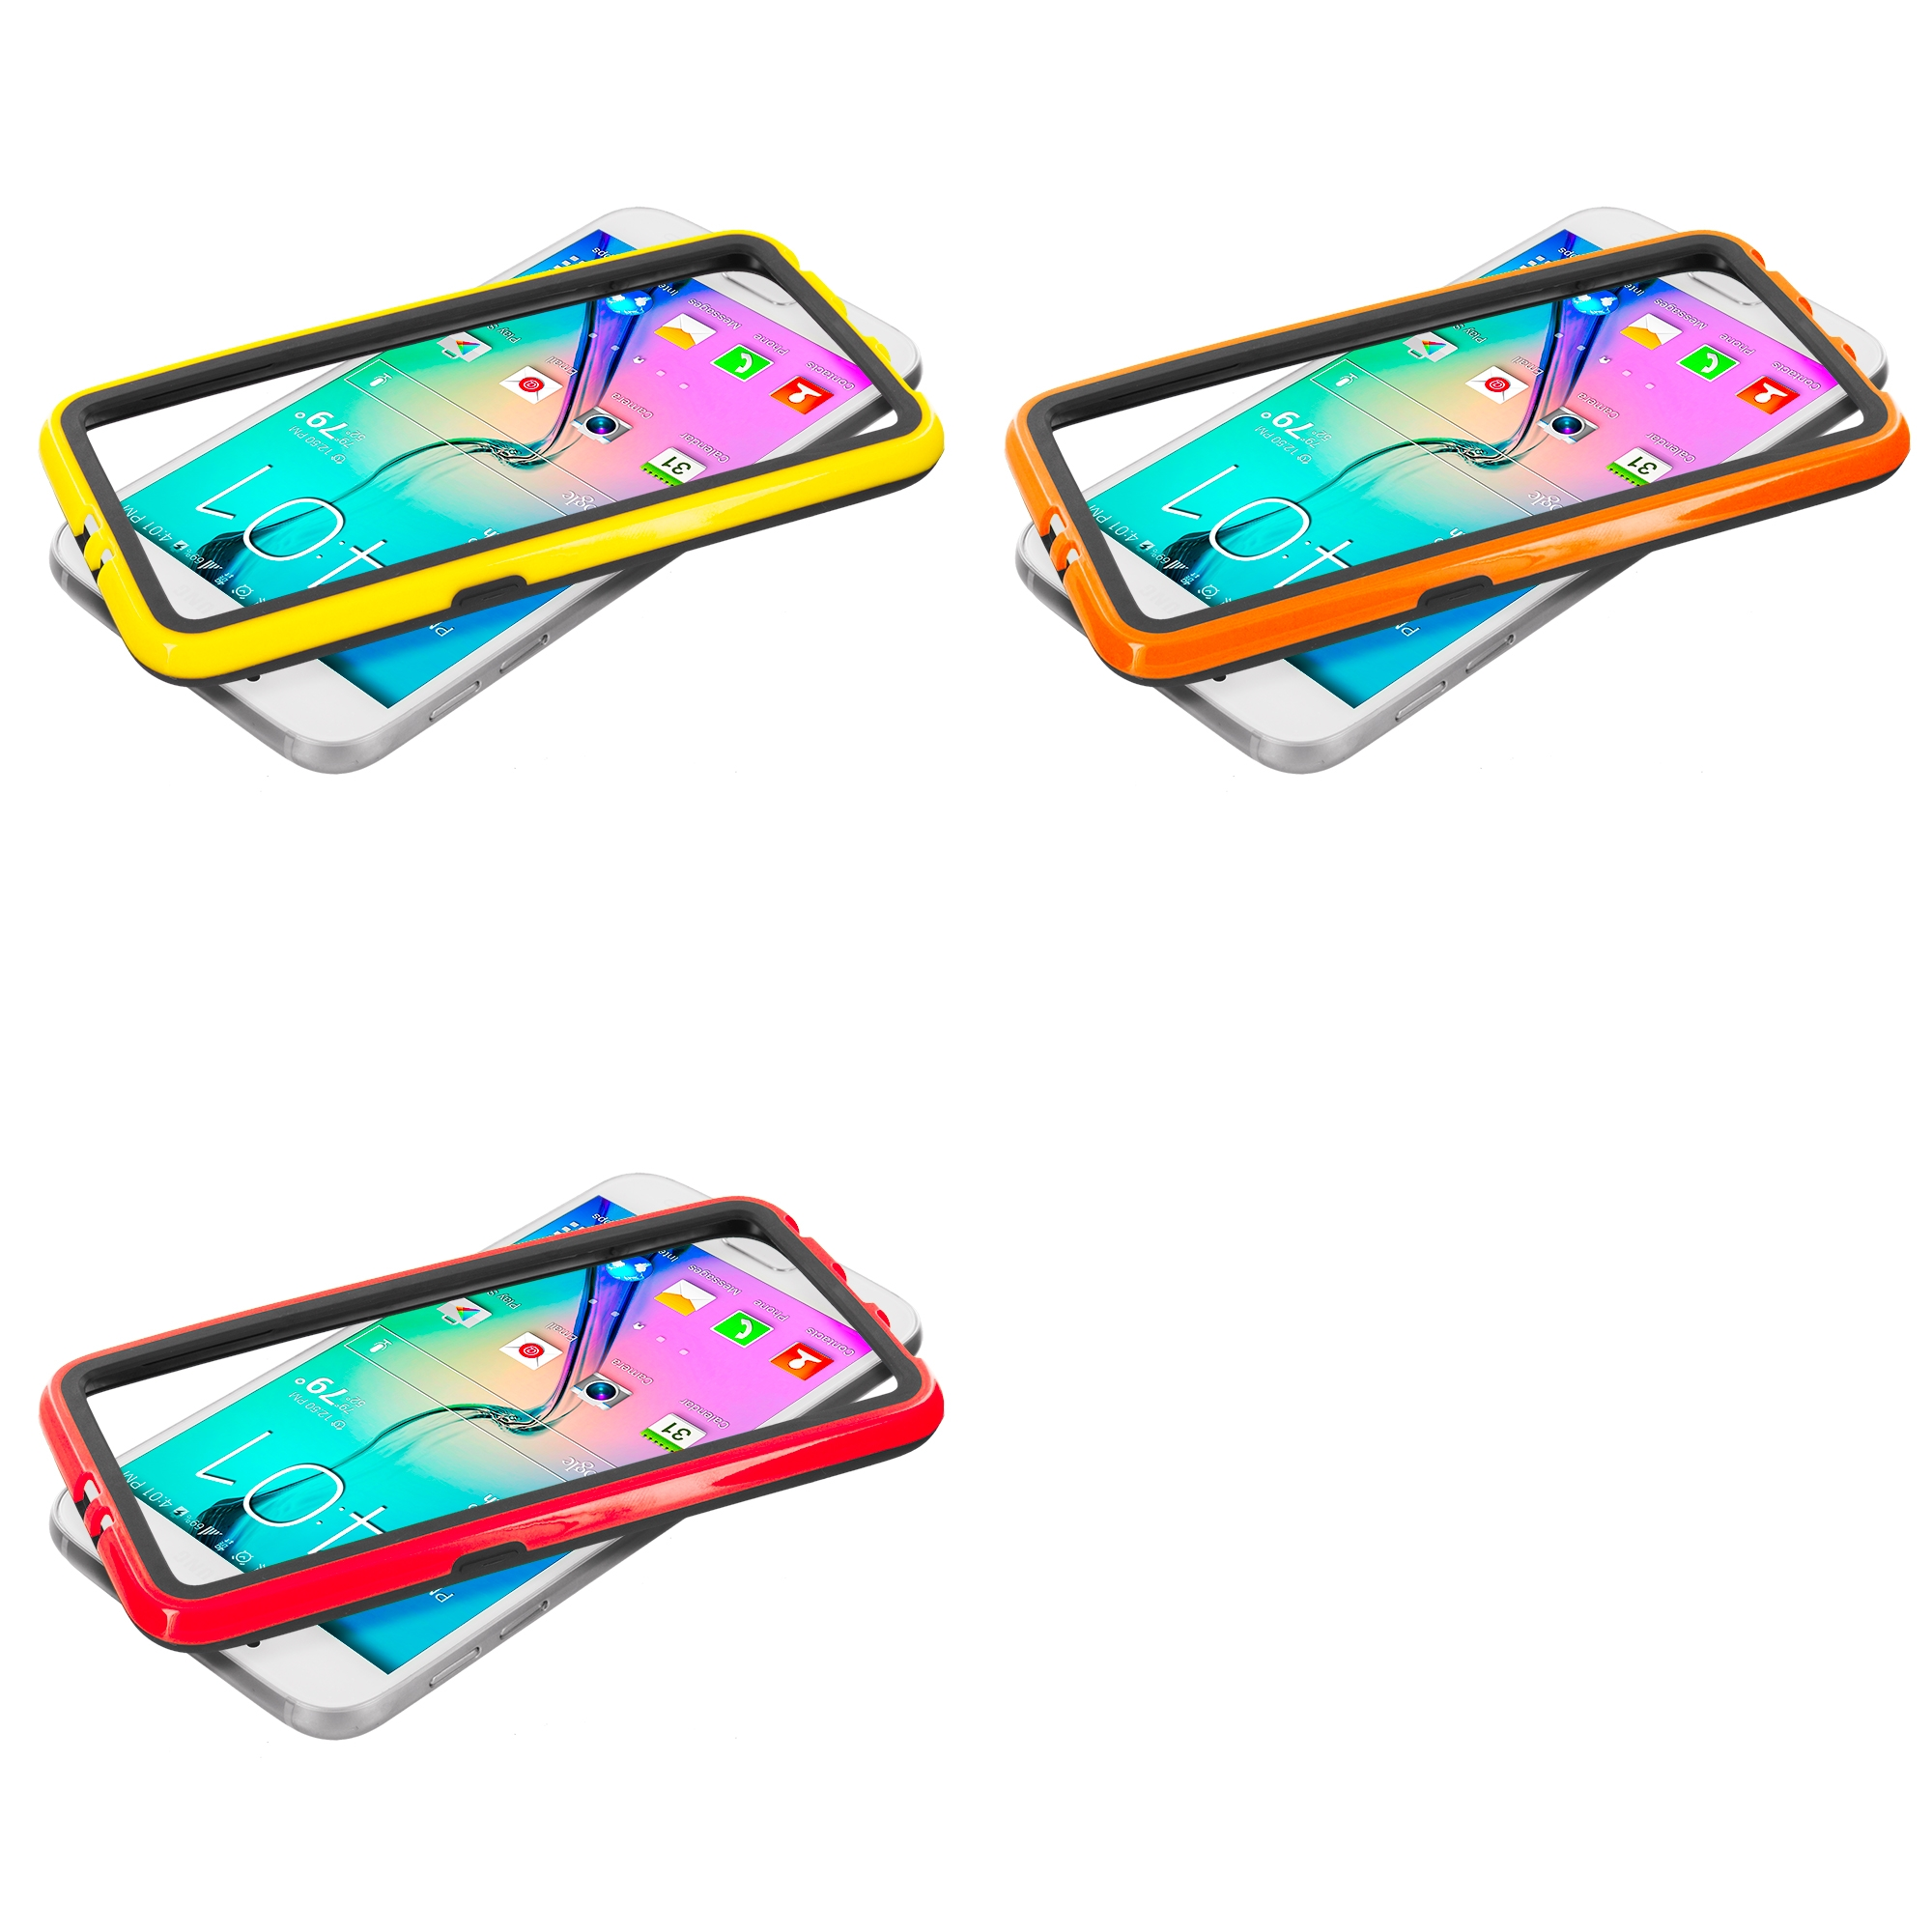 Samsung Galaxy S6 Combo Pack : Black / Yellow TPU Bumper Frame with Metal Buttons